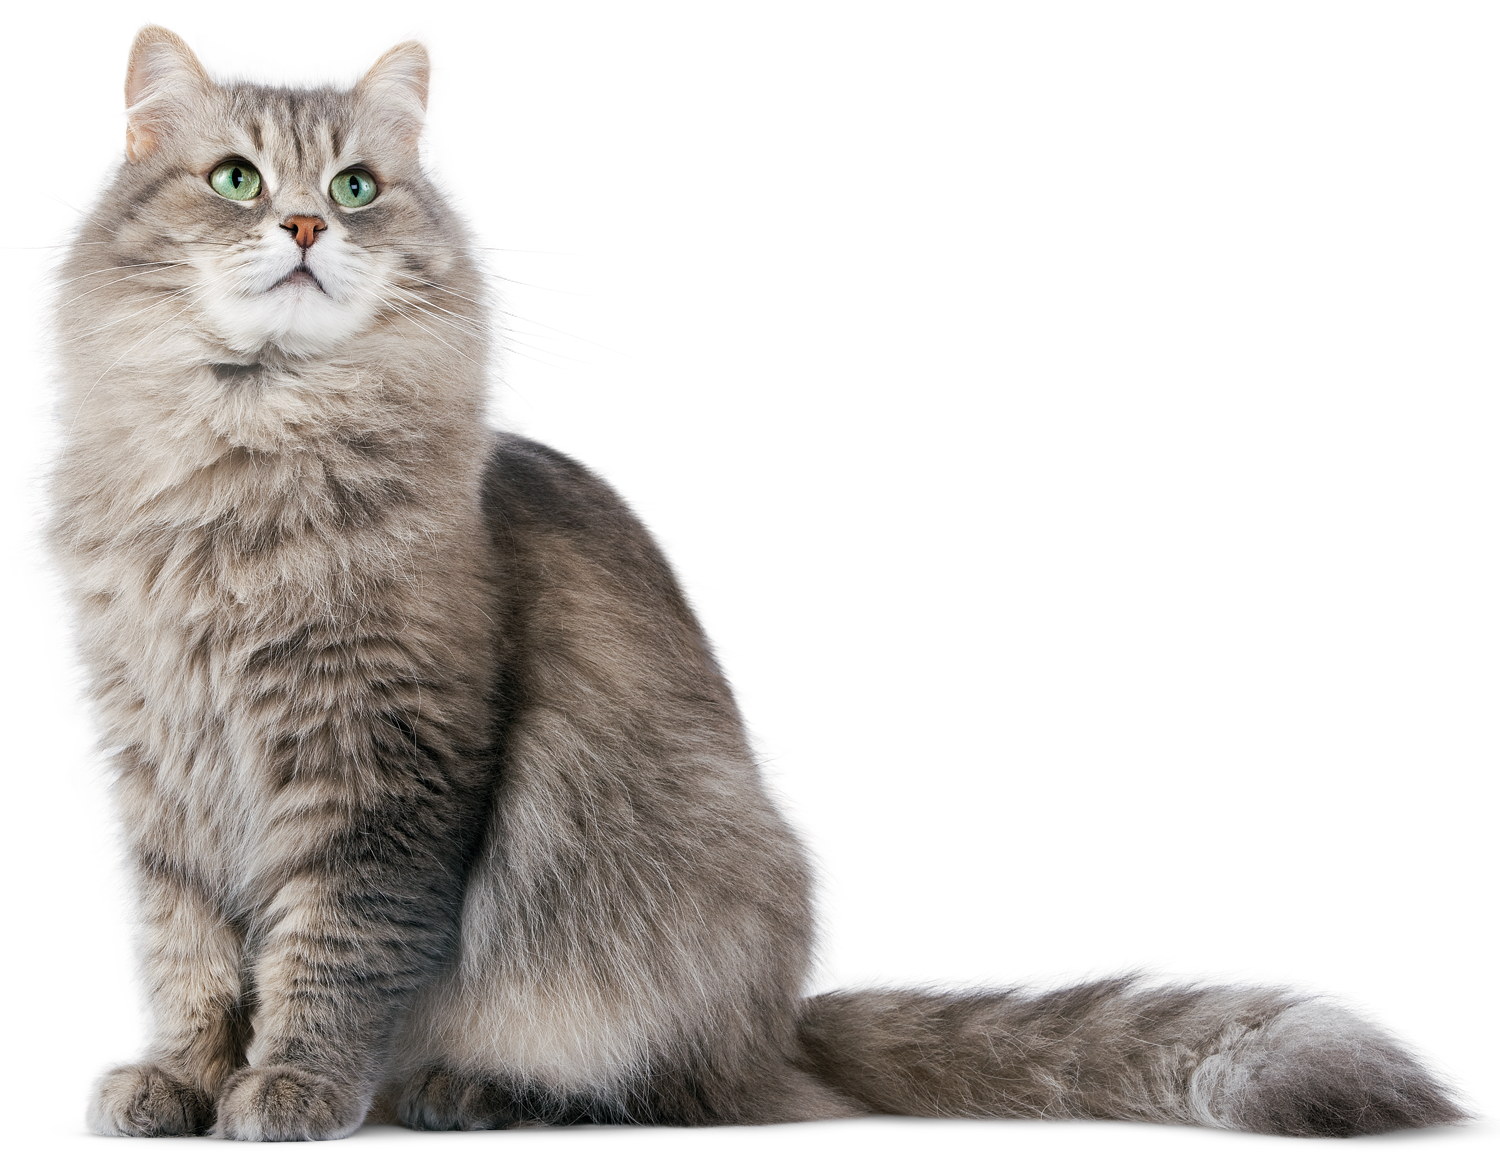 Png Cat - Download Siberian Cat PNG - Free Transparent PNG Images, Icons and ...